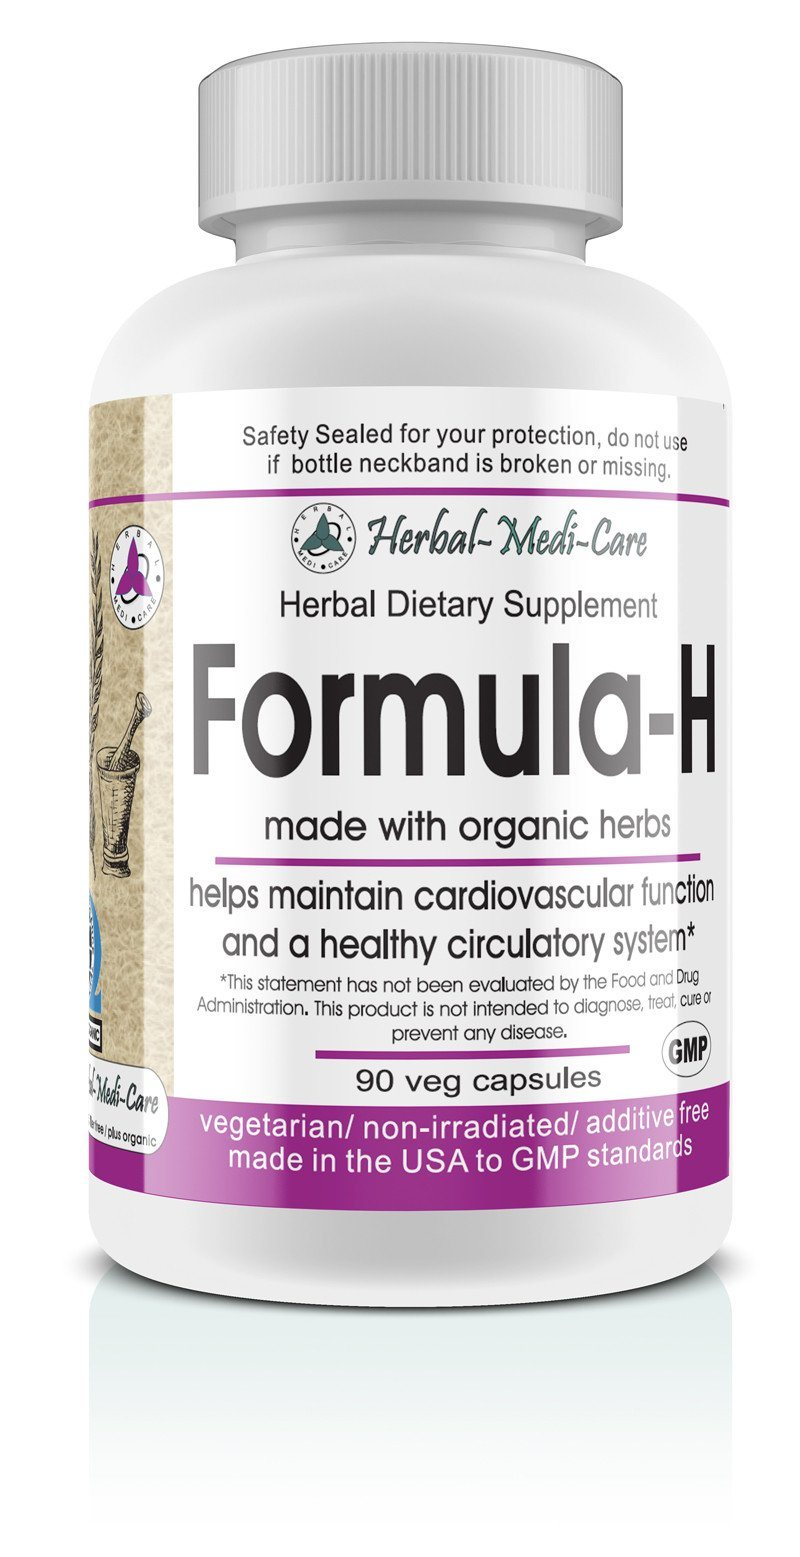 Herbal-Medi-Care Whole Food Formula-H (Blood Pressure) Vegetarian Capsules; 90-Count, Made with Organic - Herbal-Medi-Care Whole Food Formula-H (Blood Pressure) Vegetarian Capsules; 90-Count, Made with Organic - Herbal-Medi-Care Whole Food Formula-H (Blood Pressure) Vegetarian Capsules; 90-Count, Made with Organic